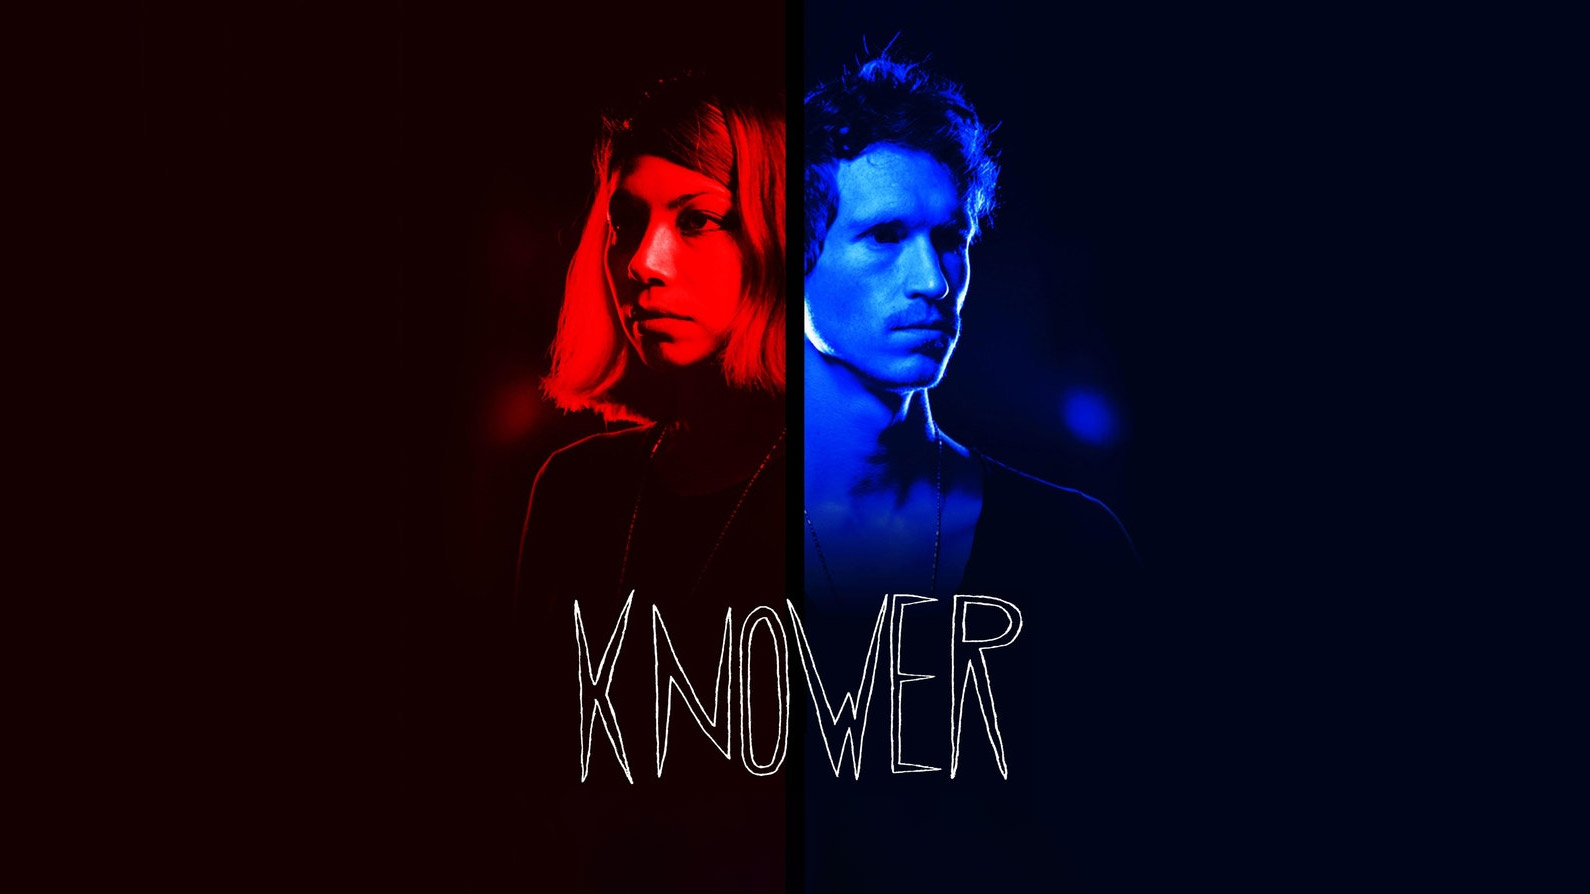 New Free 'Beat Saber' Track is an Exclusive Debut from Electronic Band 'KNOWER'